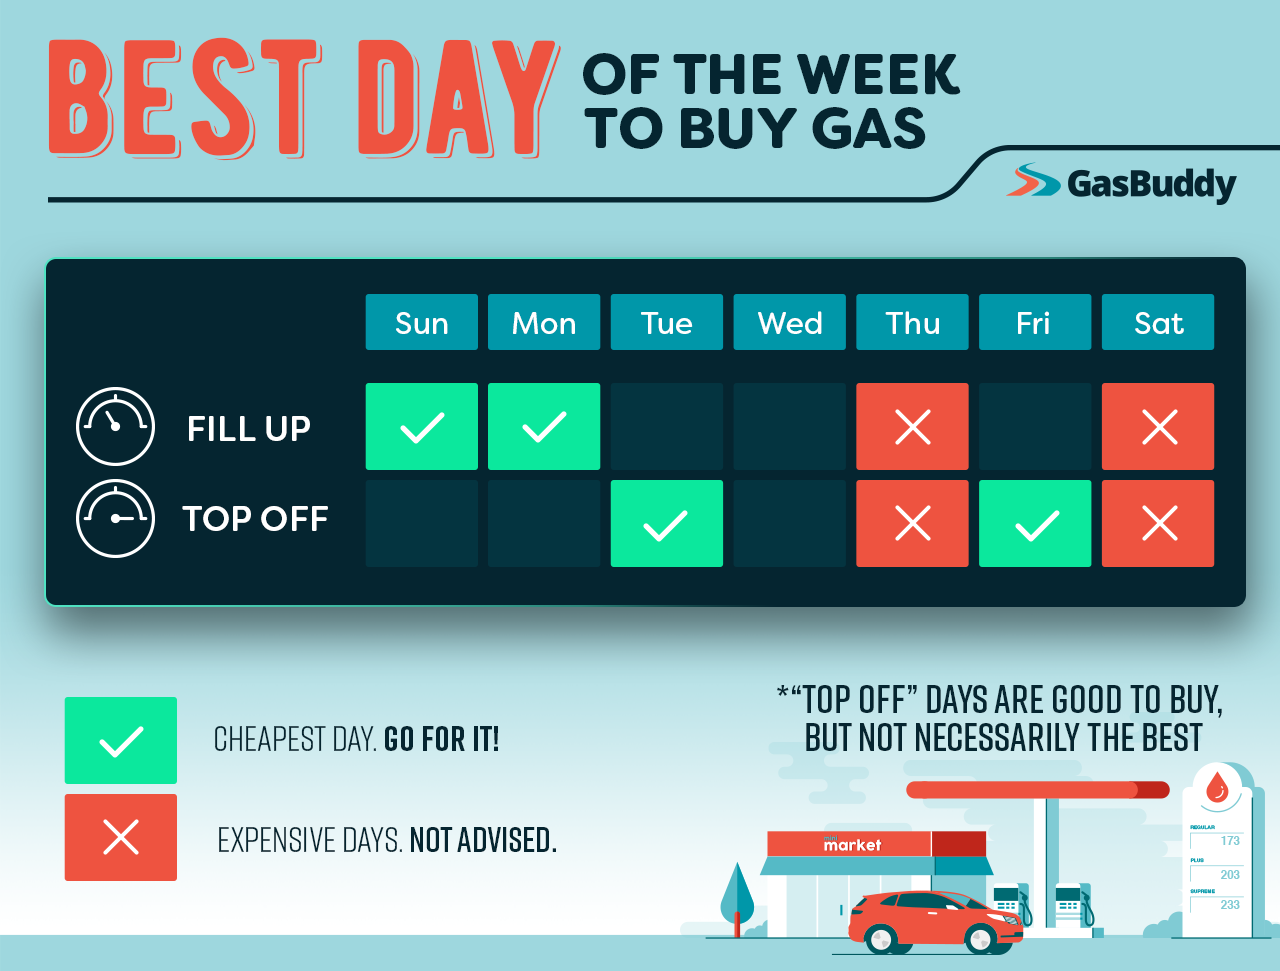 Cheapest Gas Prices >> Gasbuddy Reveals The Best Day Of Week To Buy Gas Gasbuddy For Business